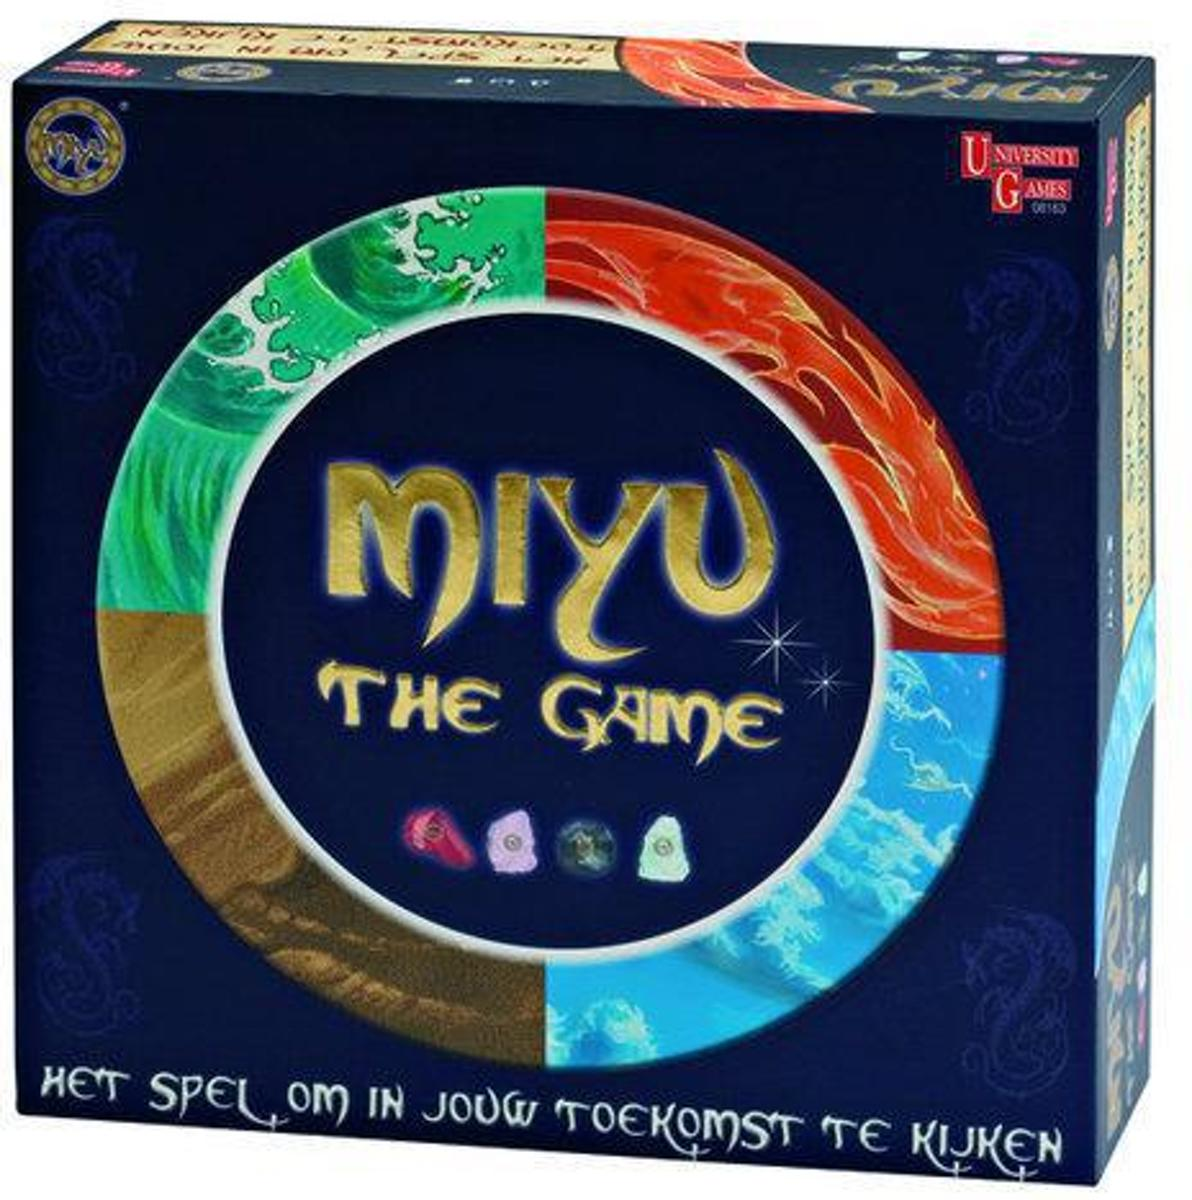 Miyu The Game